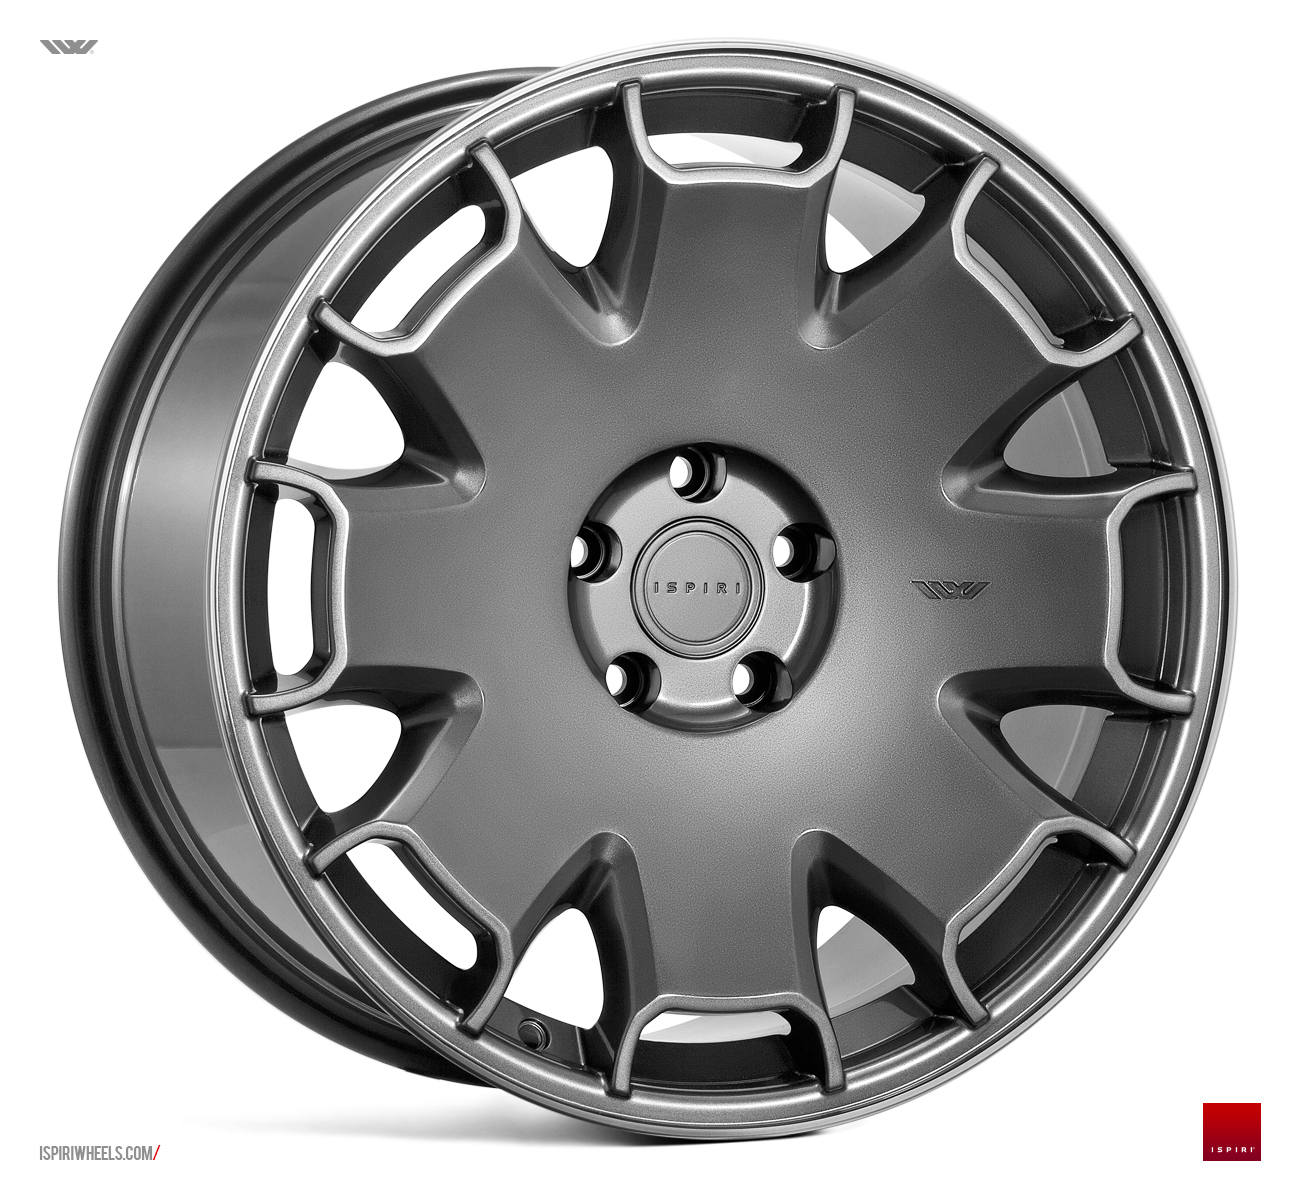 "NEW 19"" ISPIRI CSR2 ALLOY WHEELS IN CARBON GRAPHITE WITH POLISHED LIP et35/33"